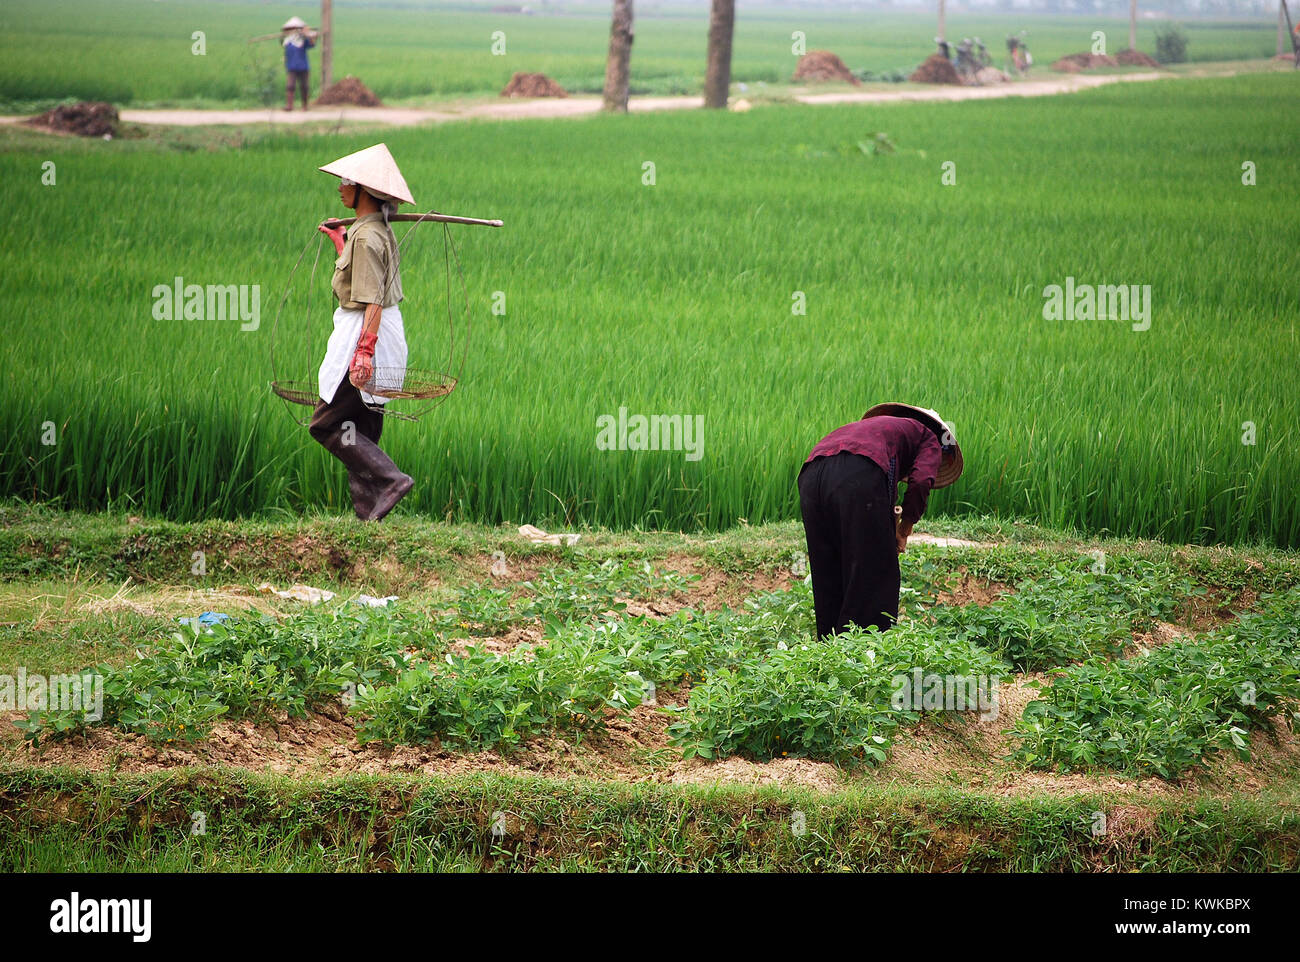 Farmers working in the paddy field near Hanoi. They wear typical Vietnamese hat. - Stock Image